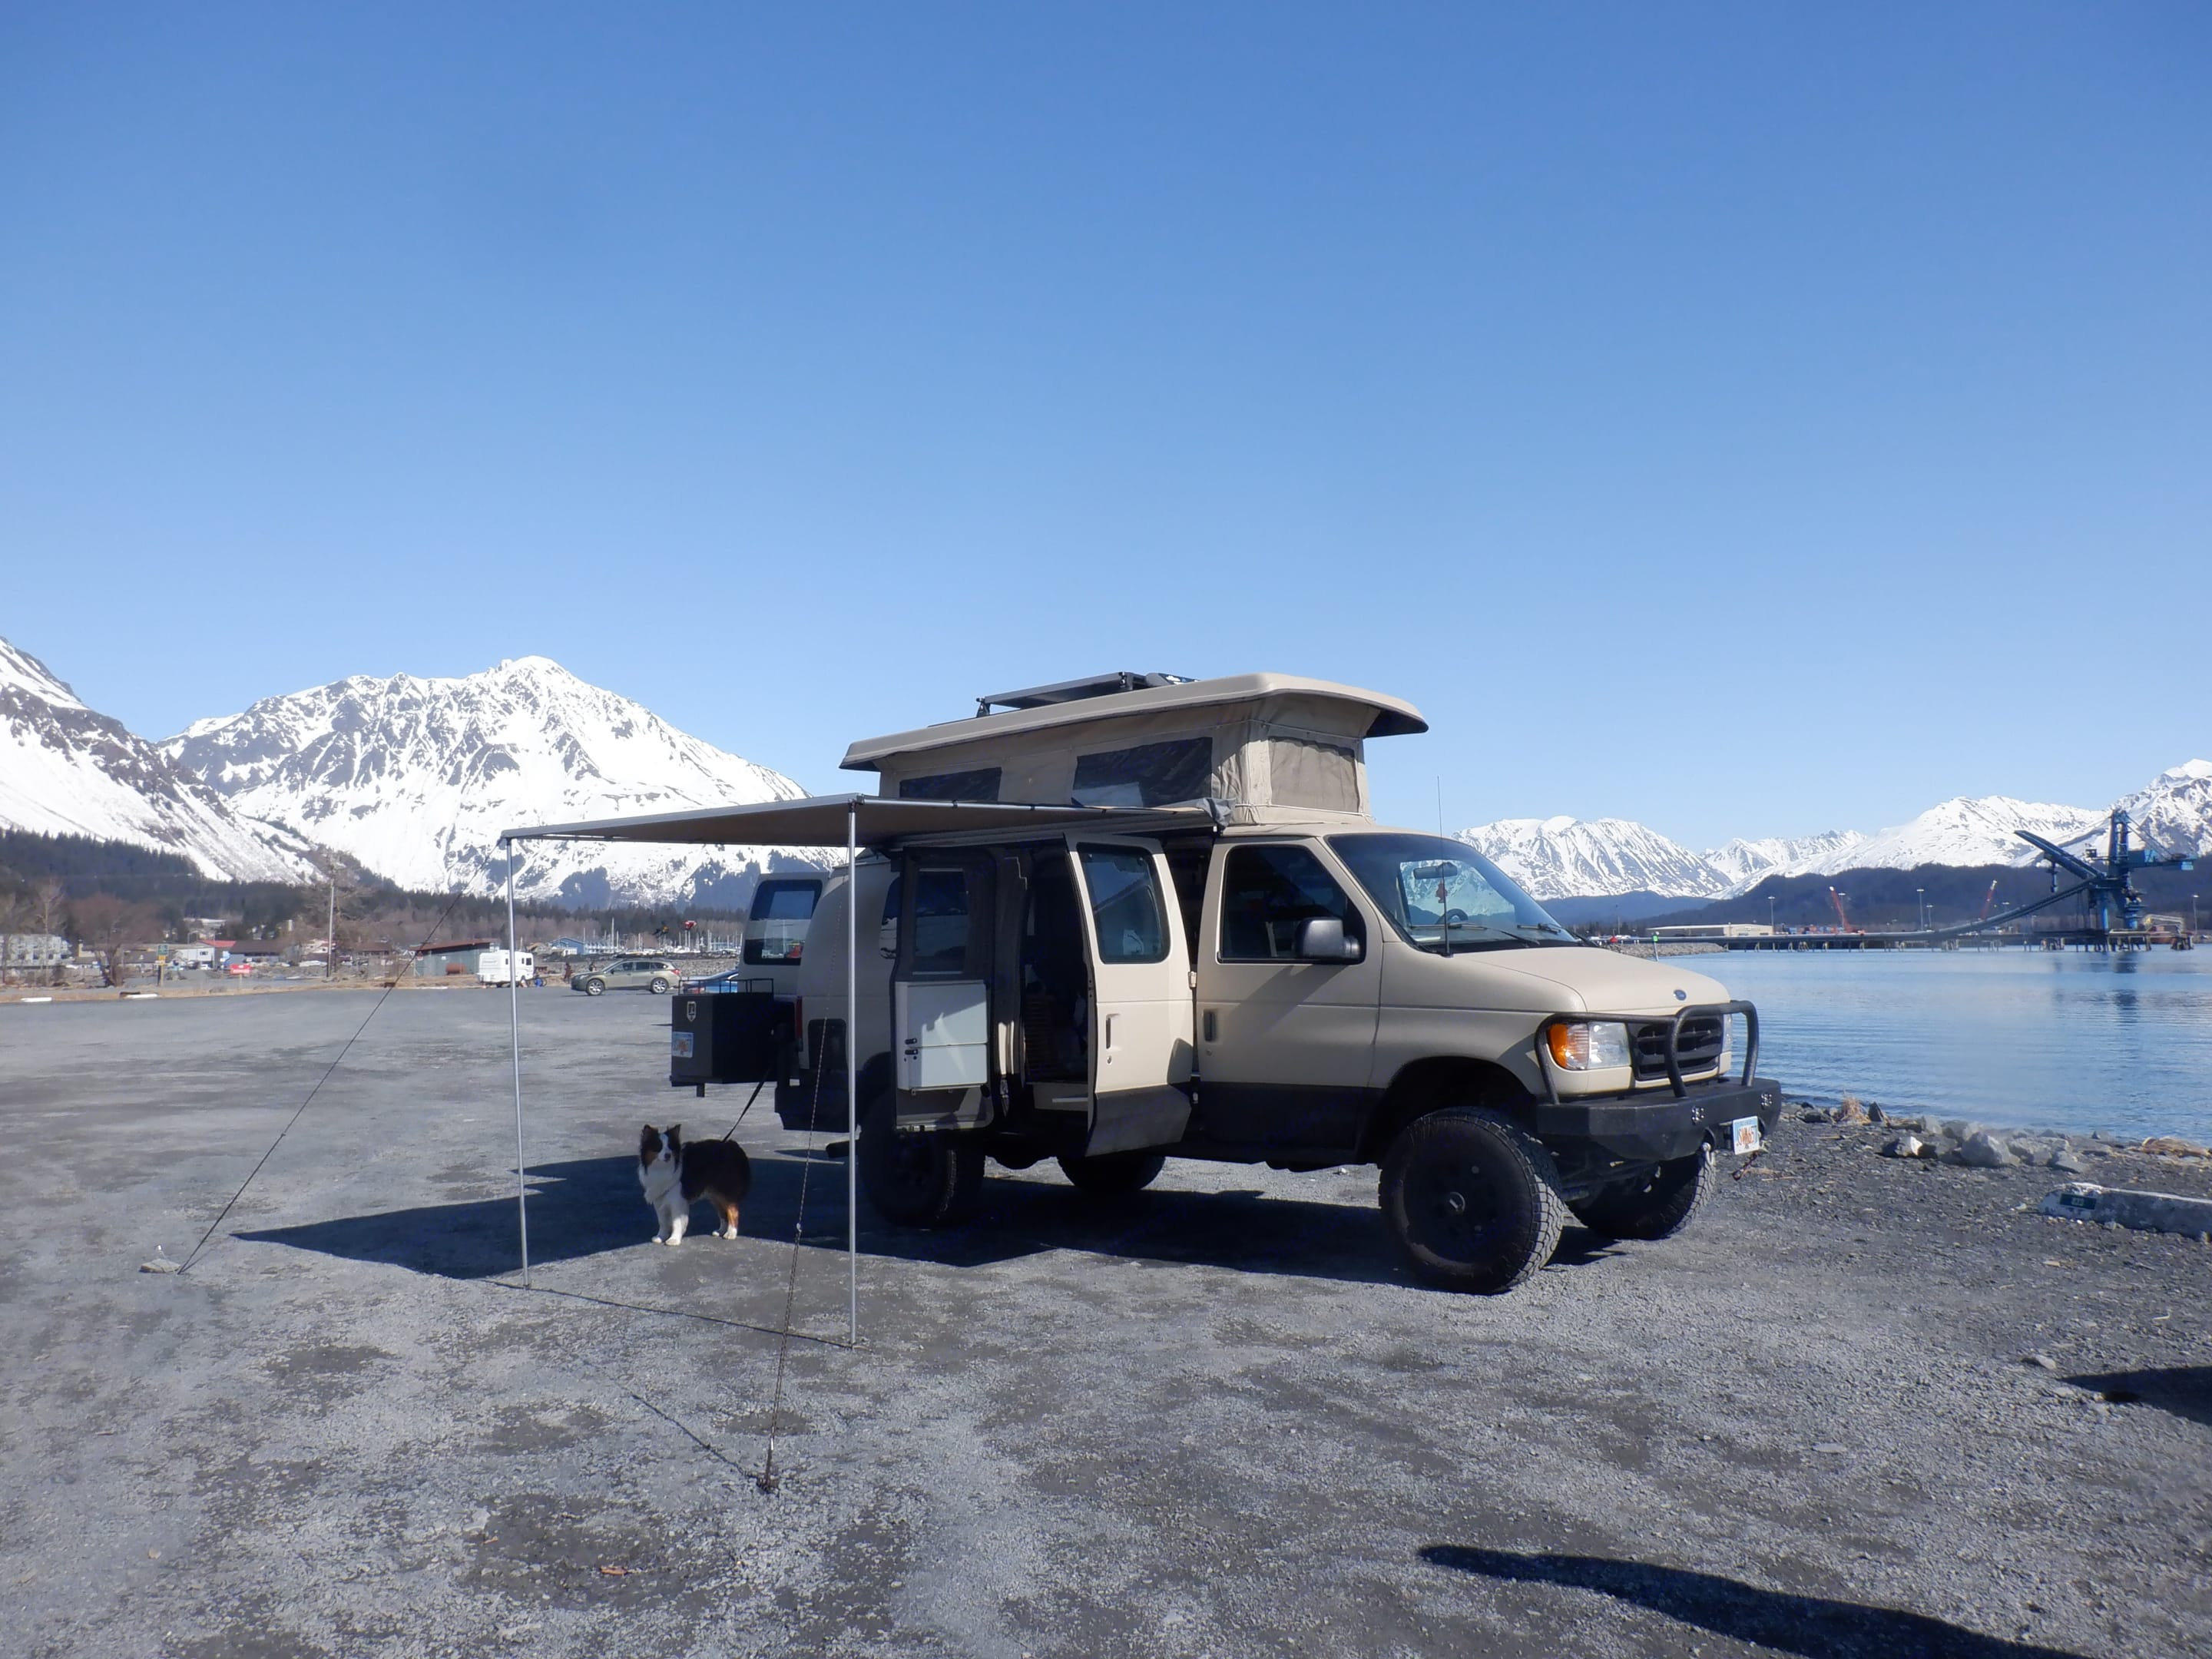 The pop-up and awning are great for beach camping. . Ford Ford E350 2002